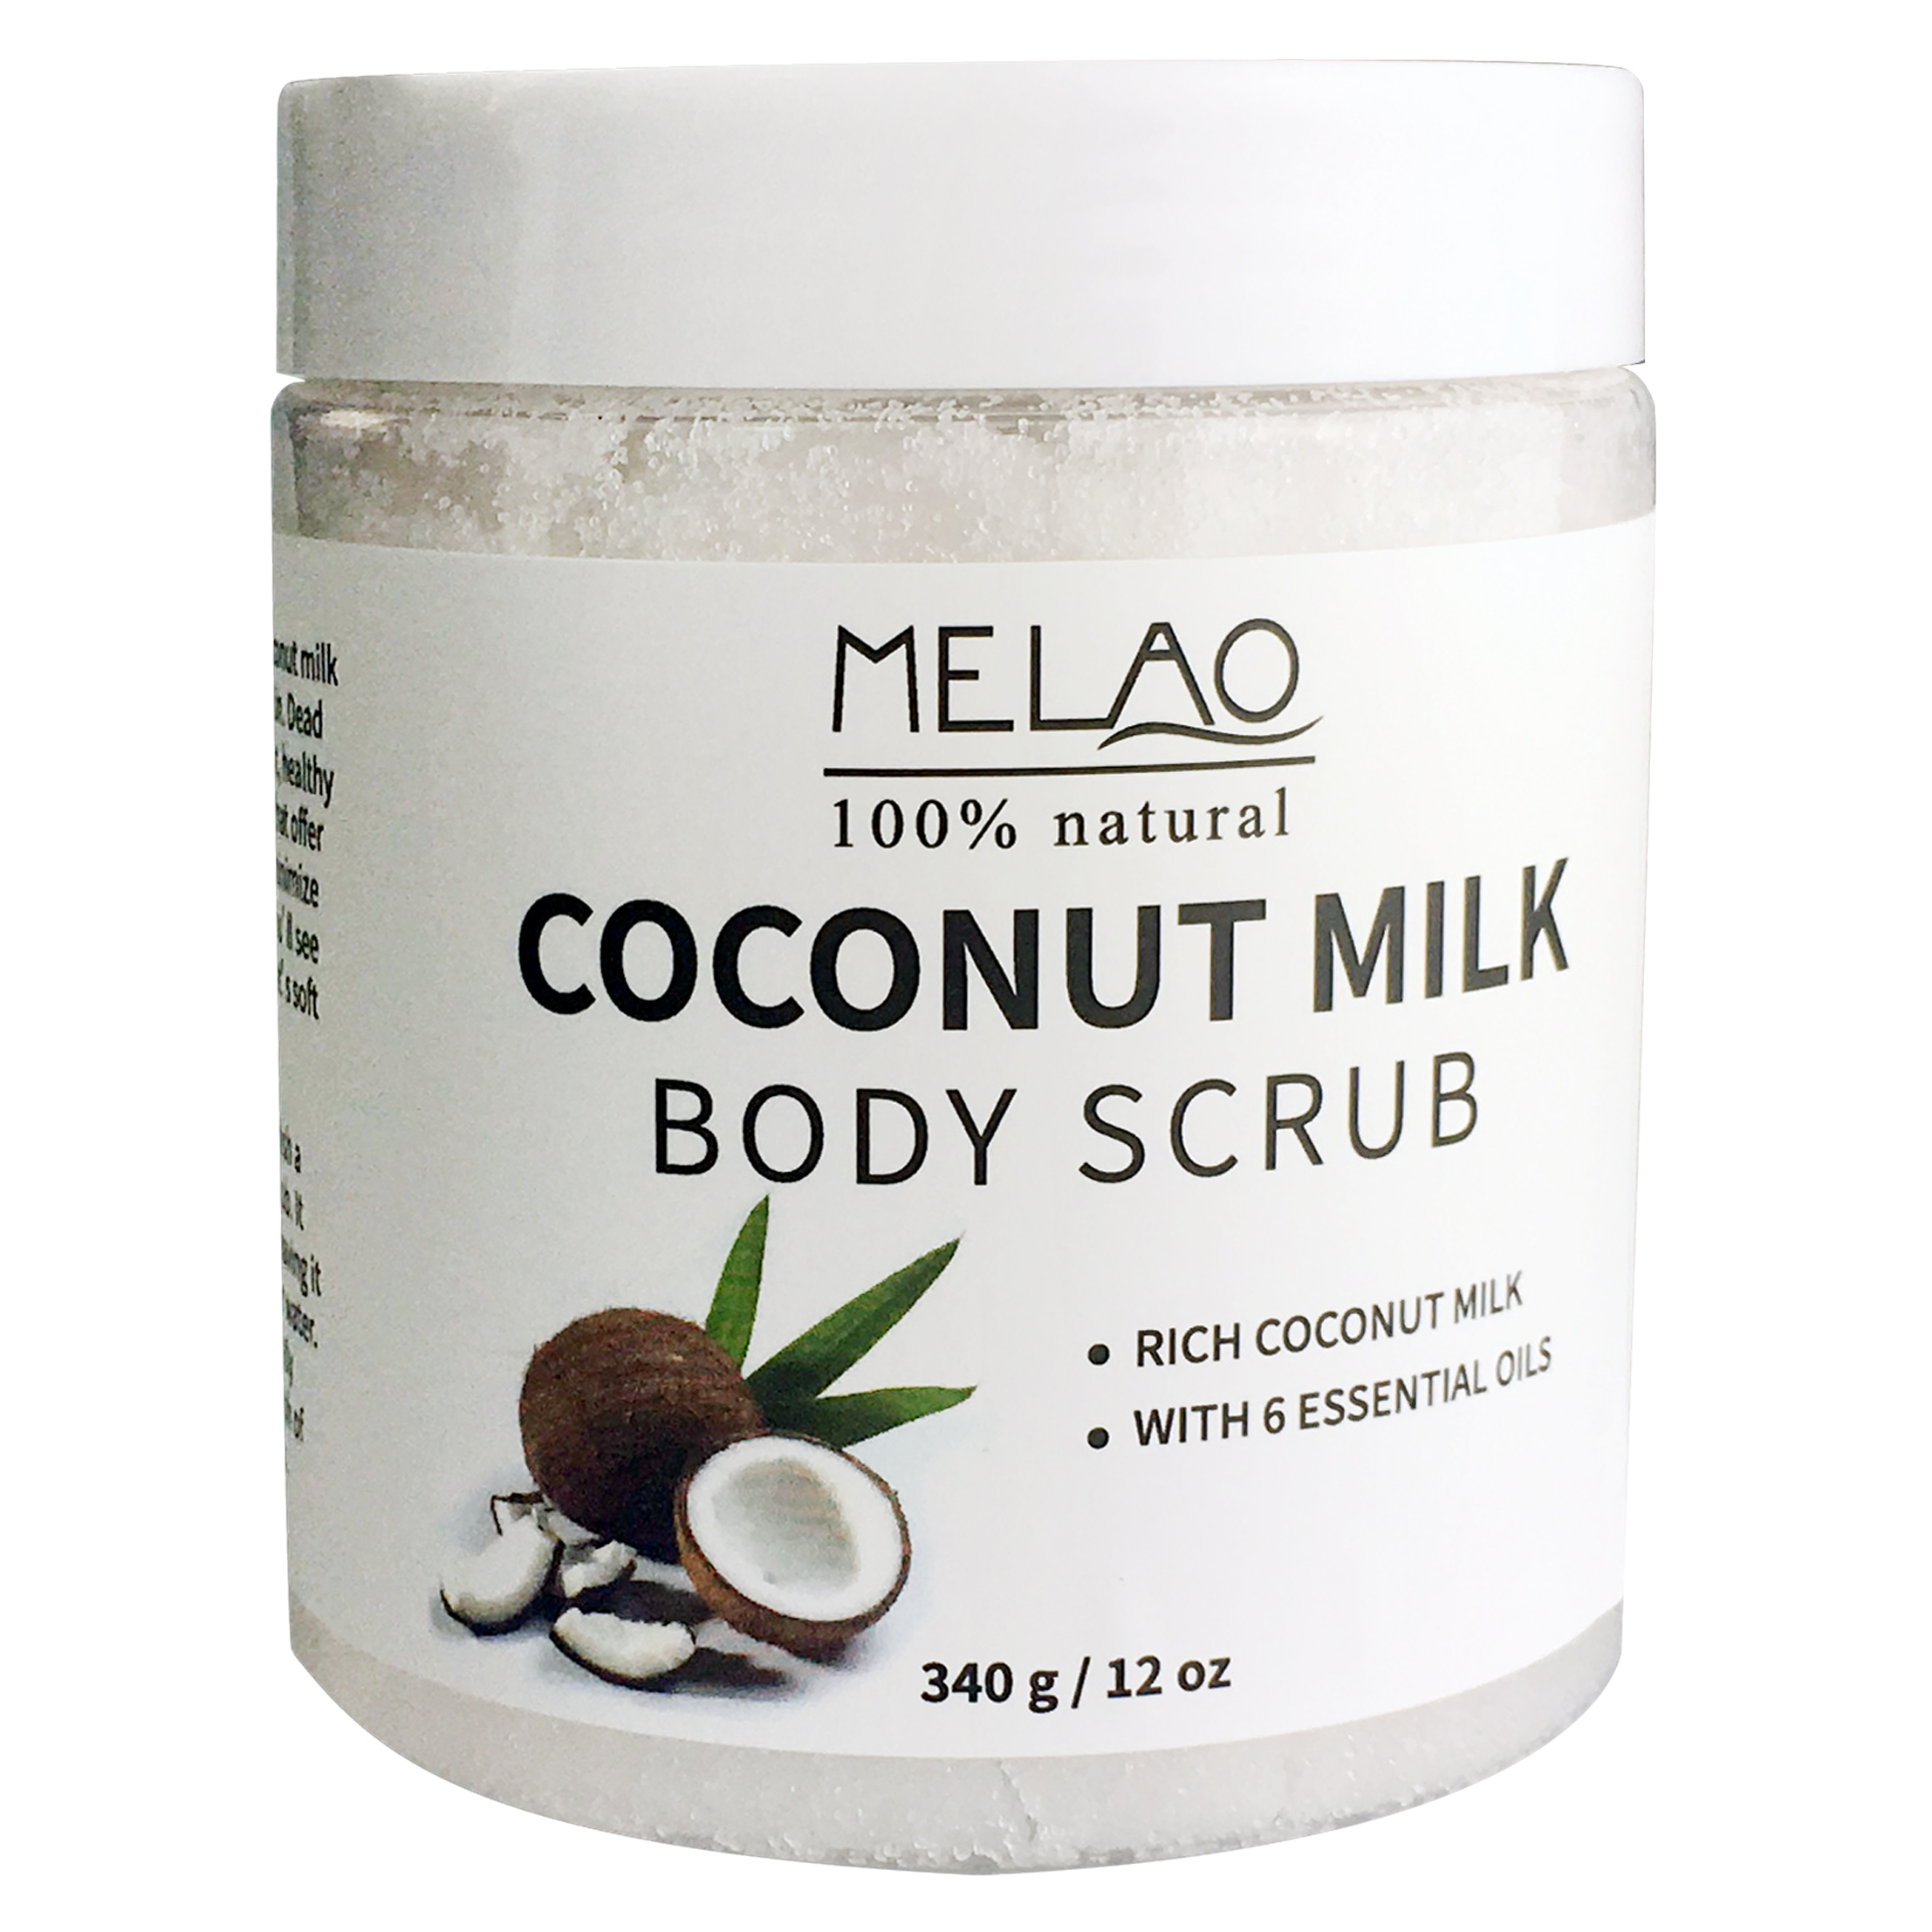 MELAO 340g/12oz 100% Natural Arabica Coconut Milk Body Scrub with Dead Sea Salt, Almond Oil and Vitamin E 4